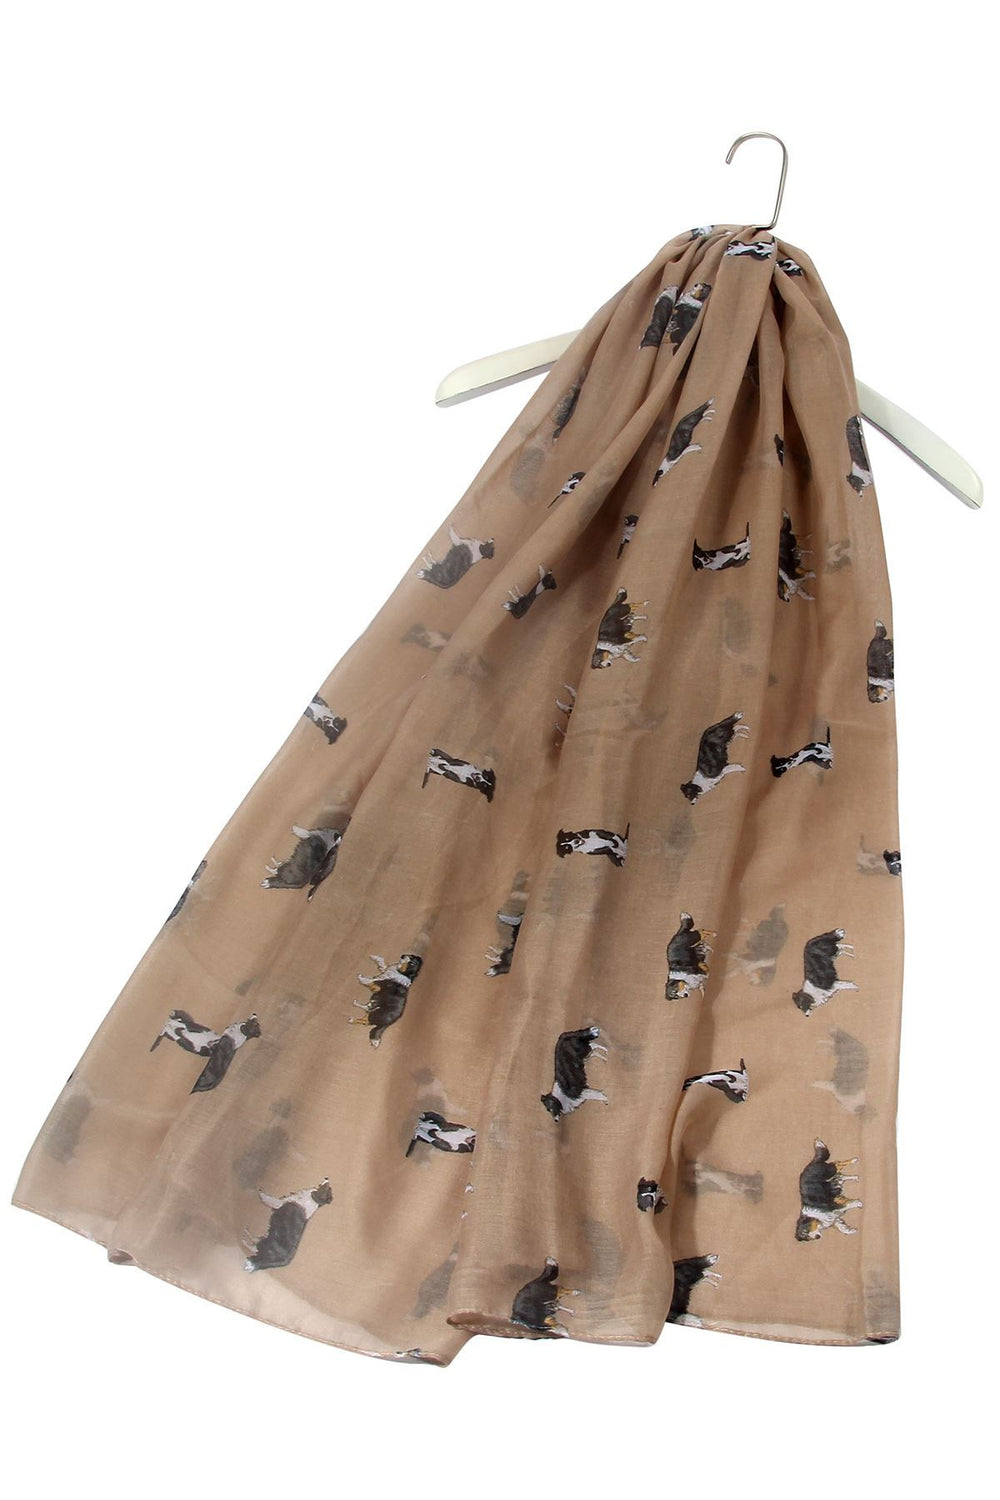 Border Collie Sheepdog Design Scarf